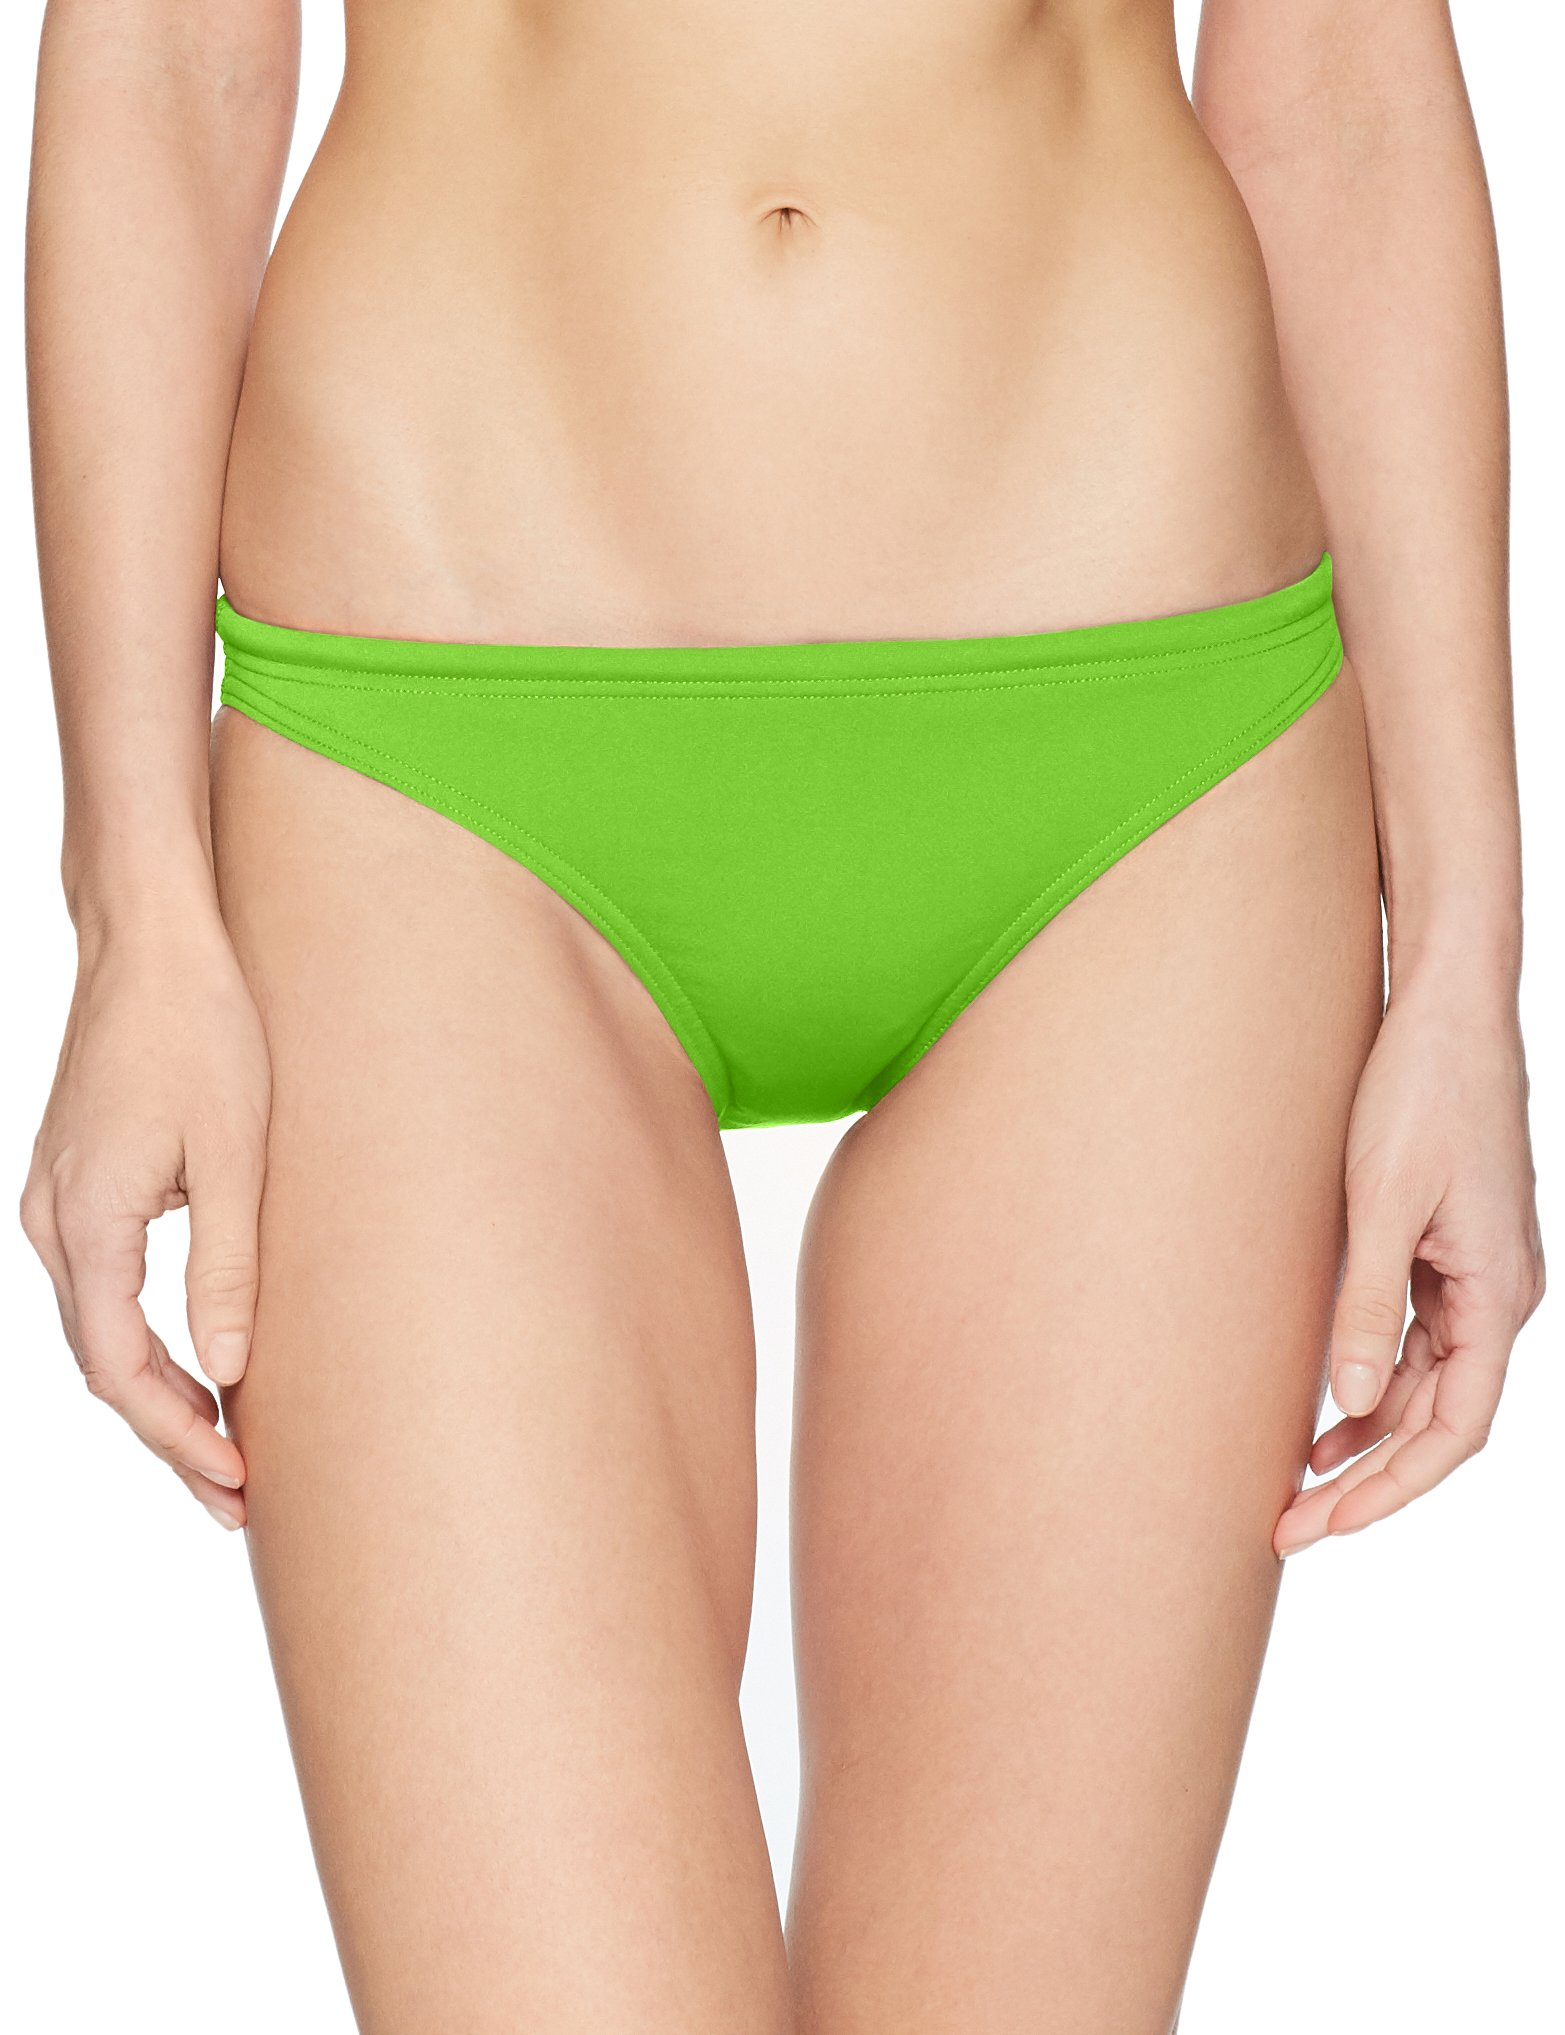 Arena Rulebreaker Real Bikini Bottom, Leaf-Yellow Star, Medium by Arena